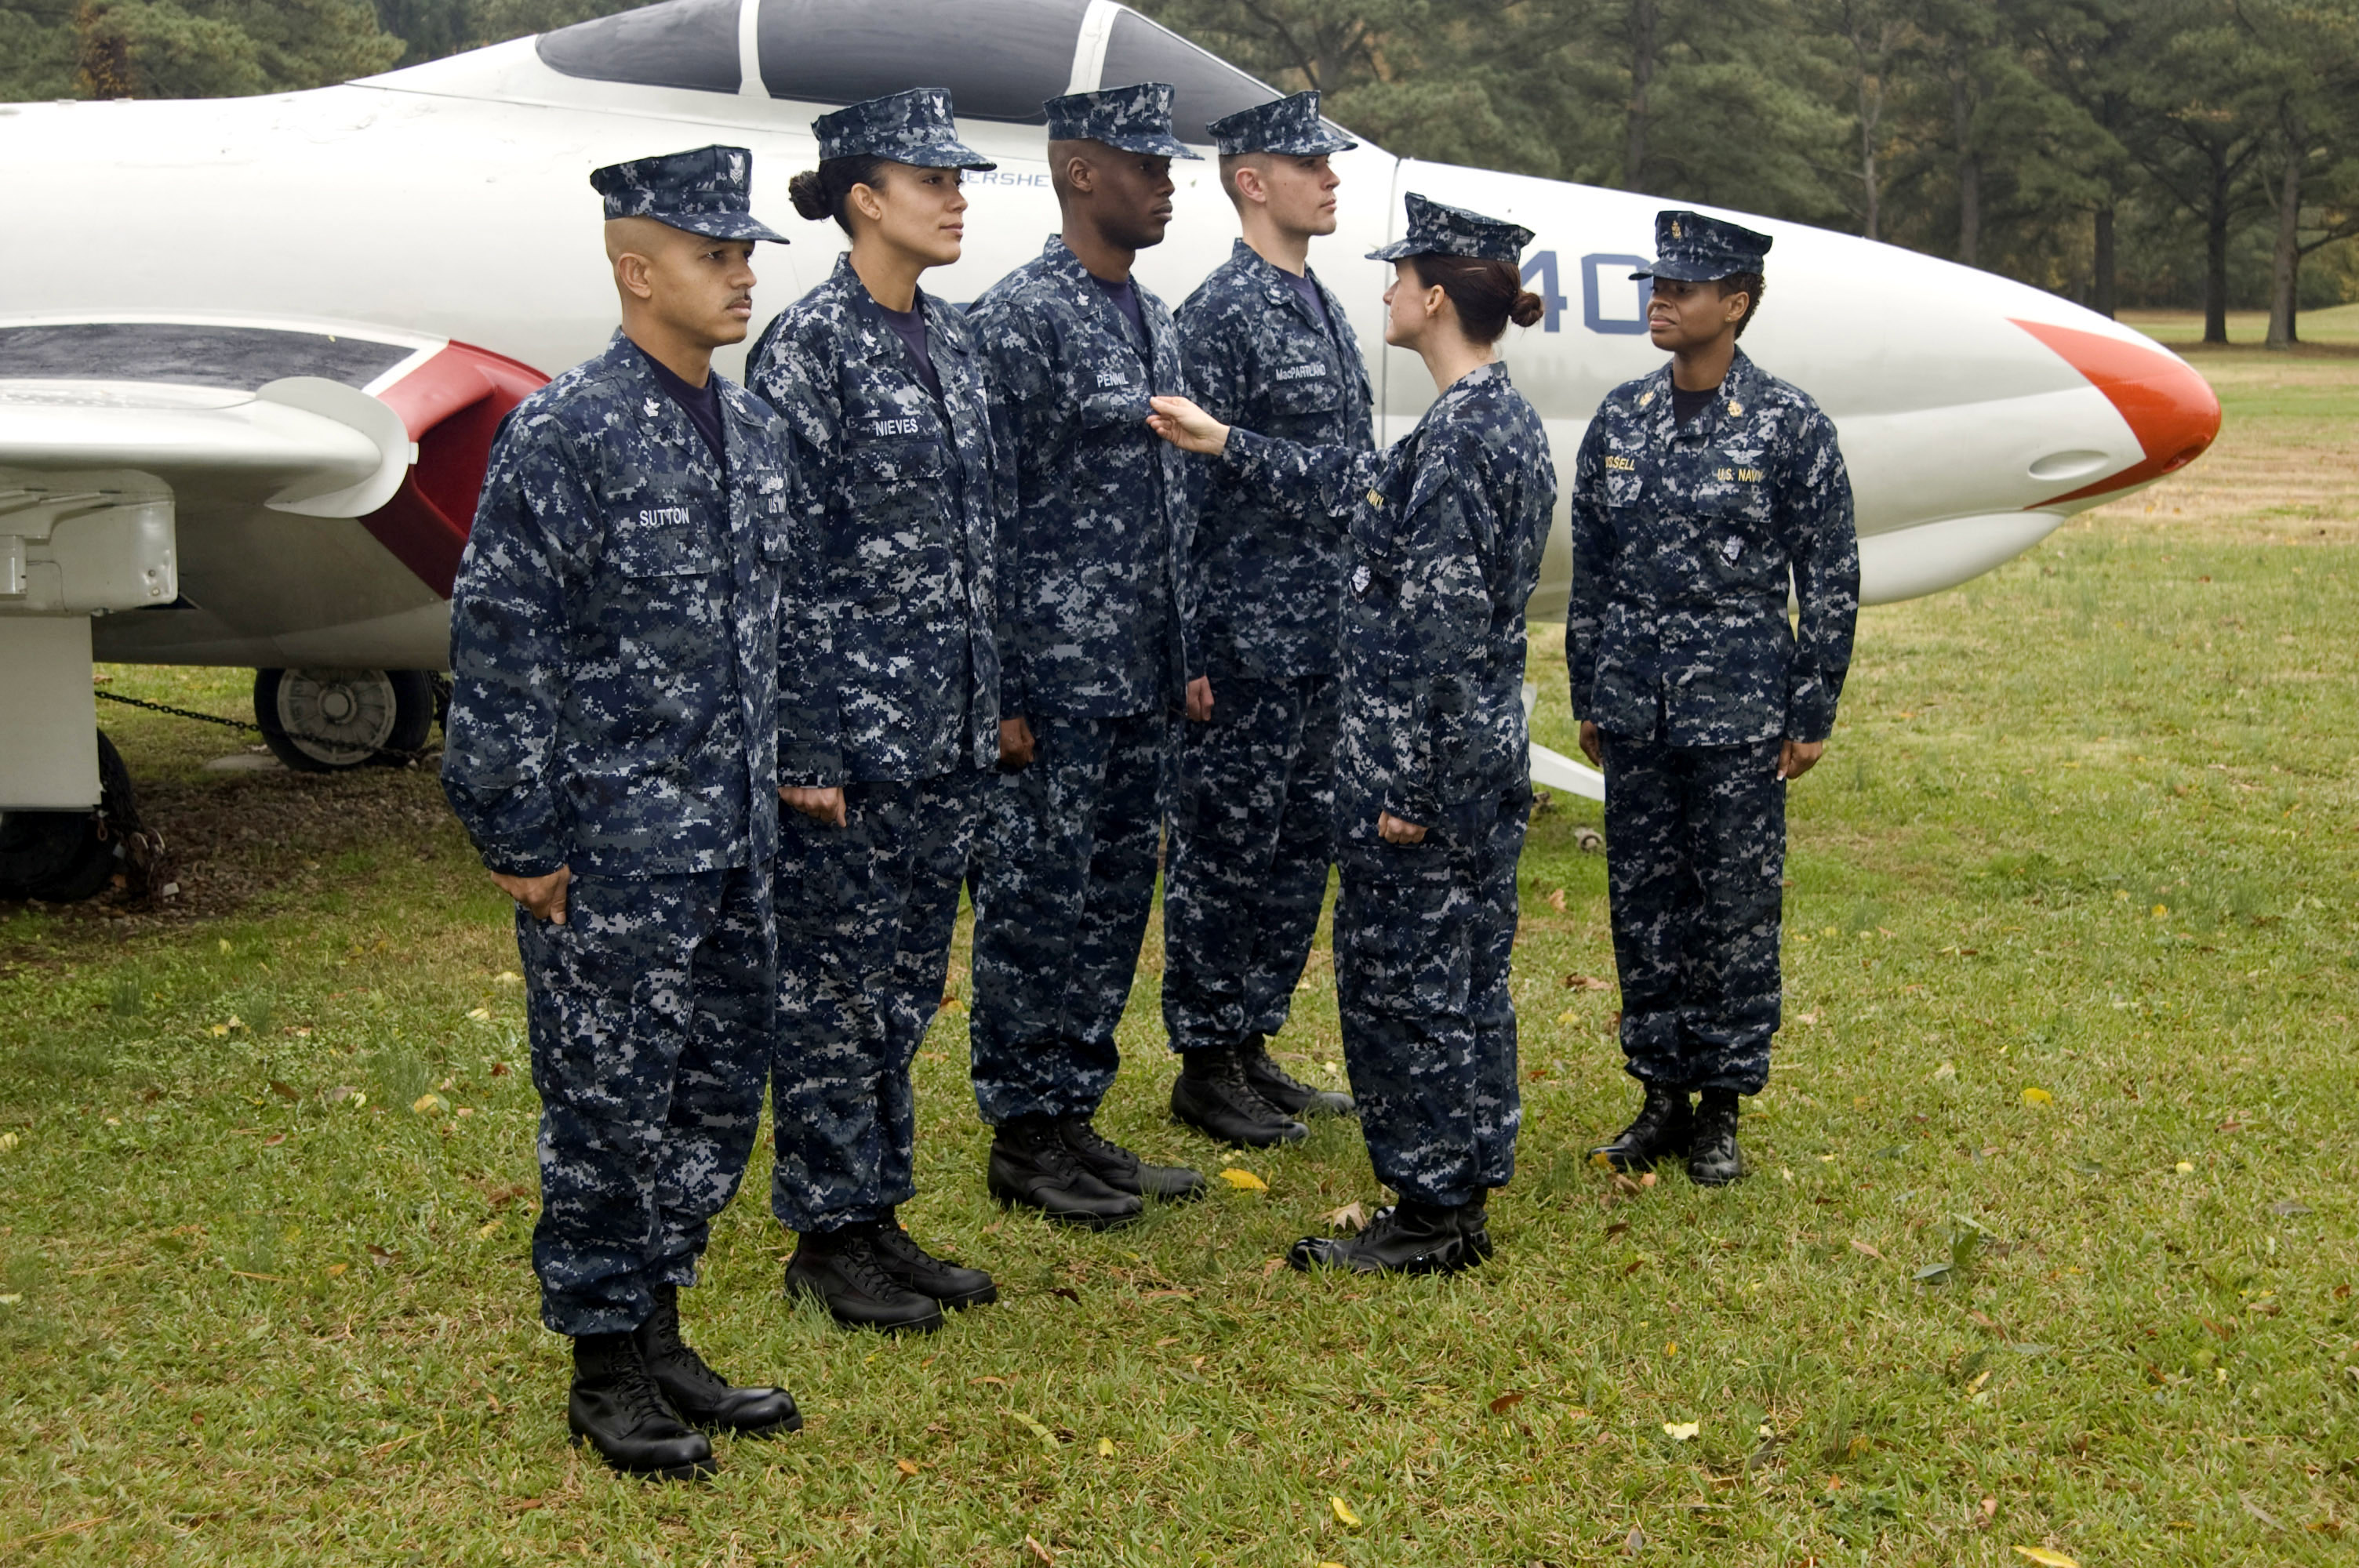 dating navy uniforms This page was created to warn facebook users about military romance scams and how the it online wearing a military uniform on their dating.